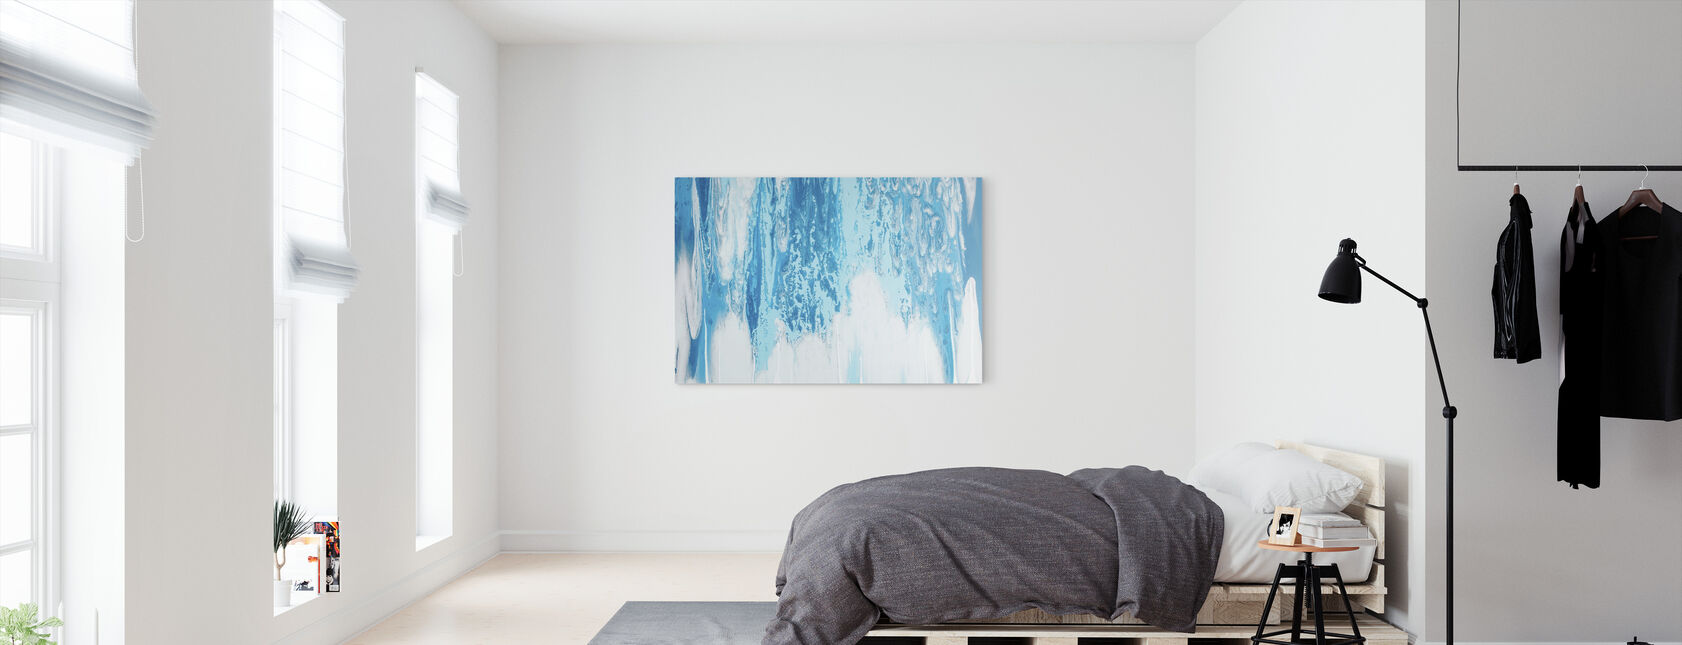 Sky Cloud Pattern - Canvas print - Bedroom